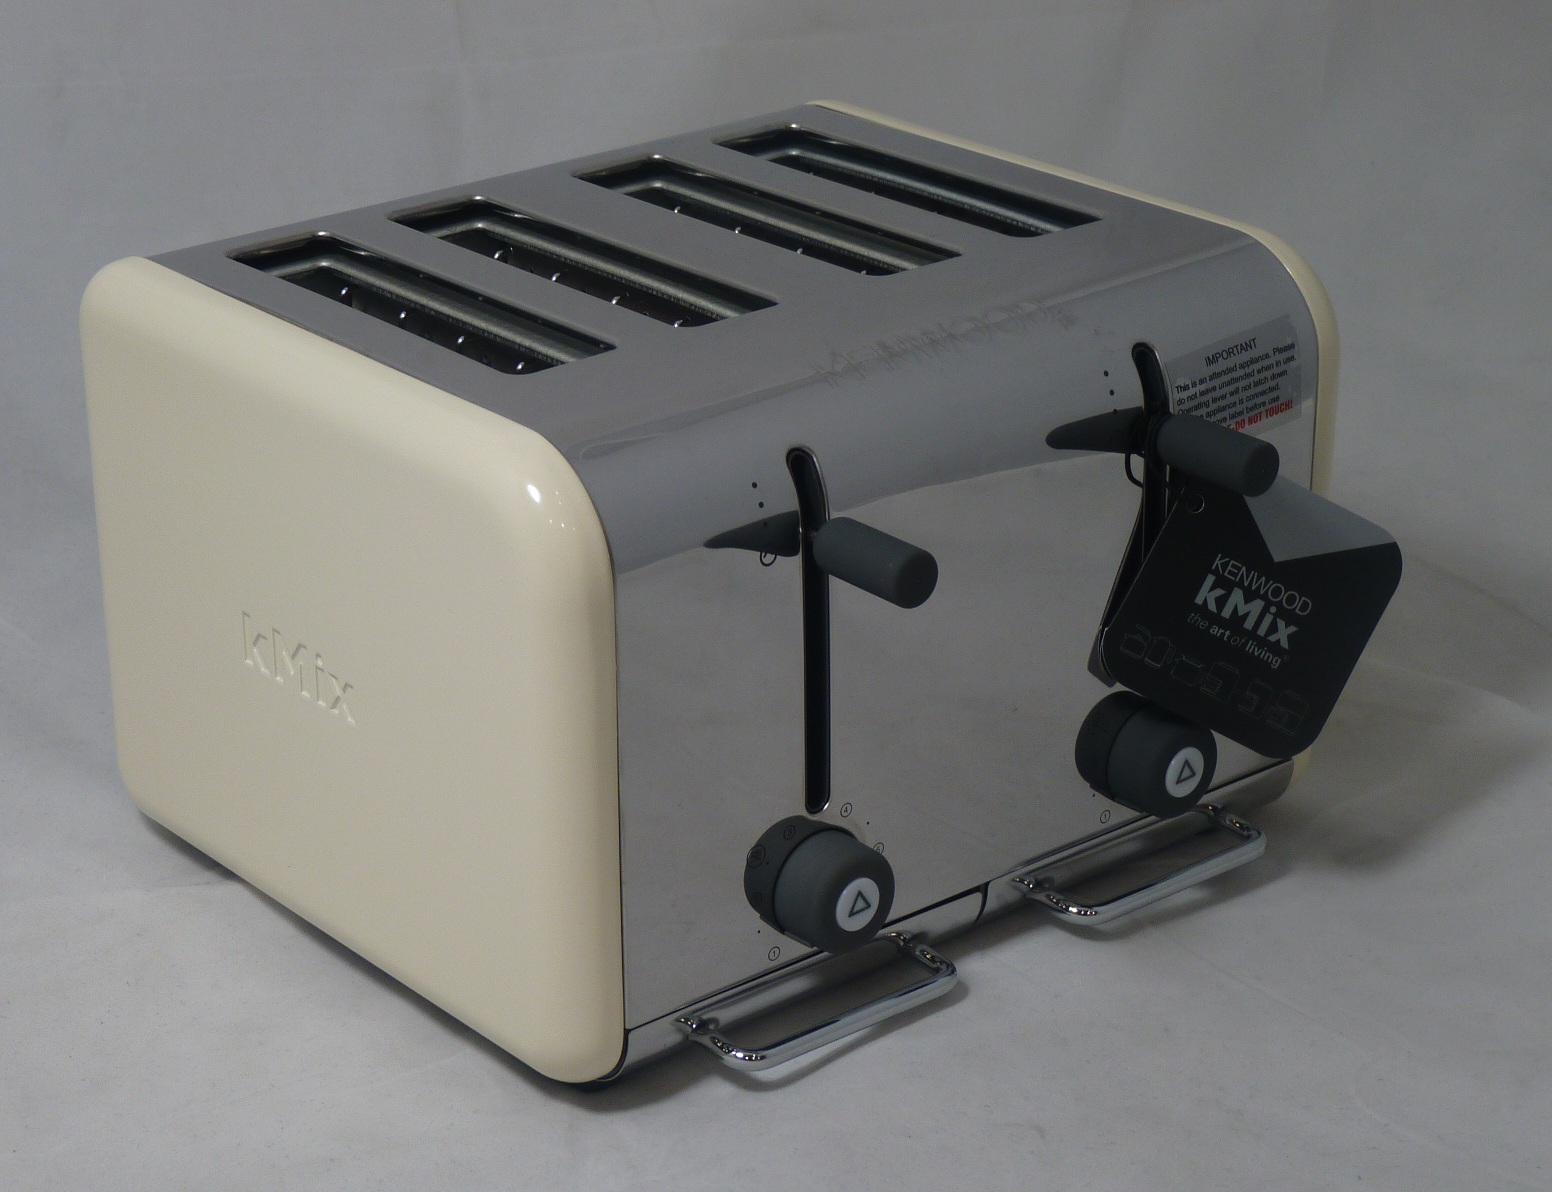 kenwood kmix ttm042 almond 4 slice toaster ebay. Black Bedroom Furniture Sets. Home Design Ideas